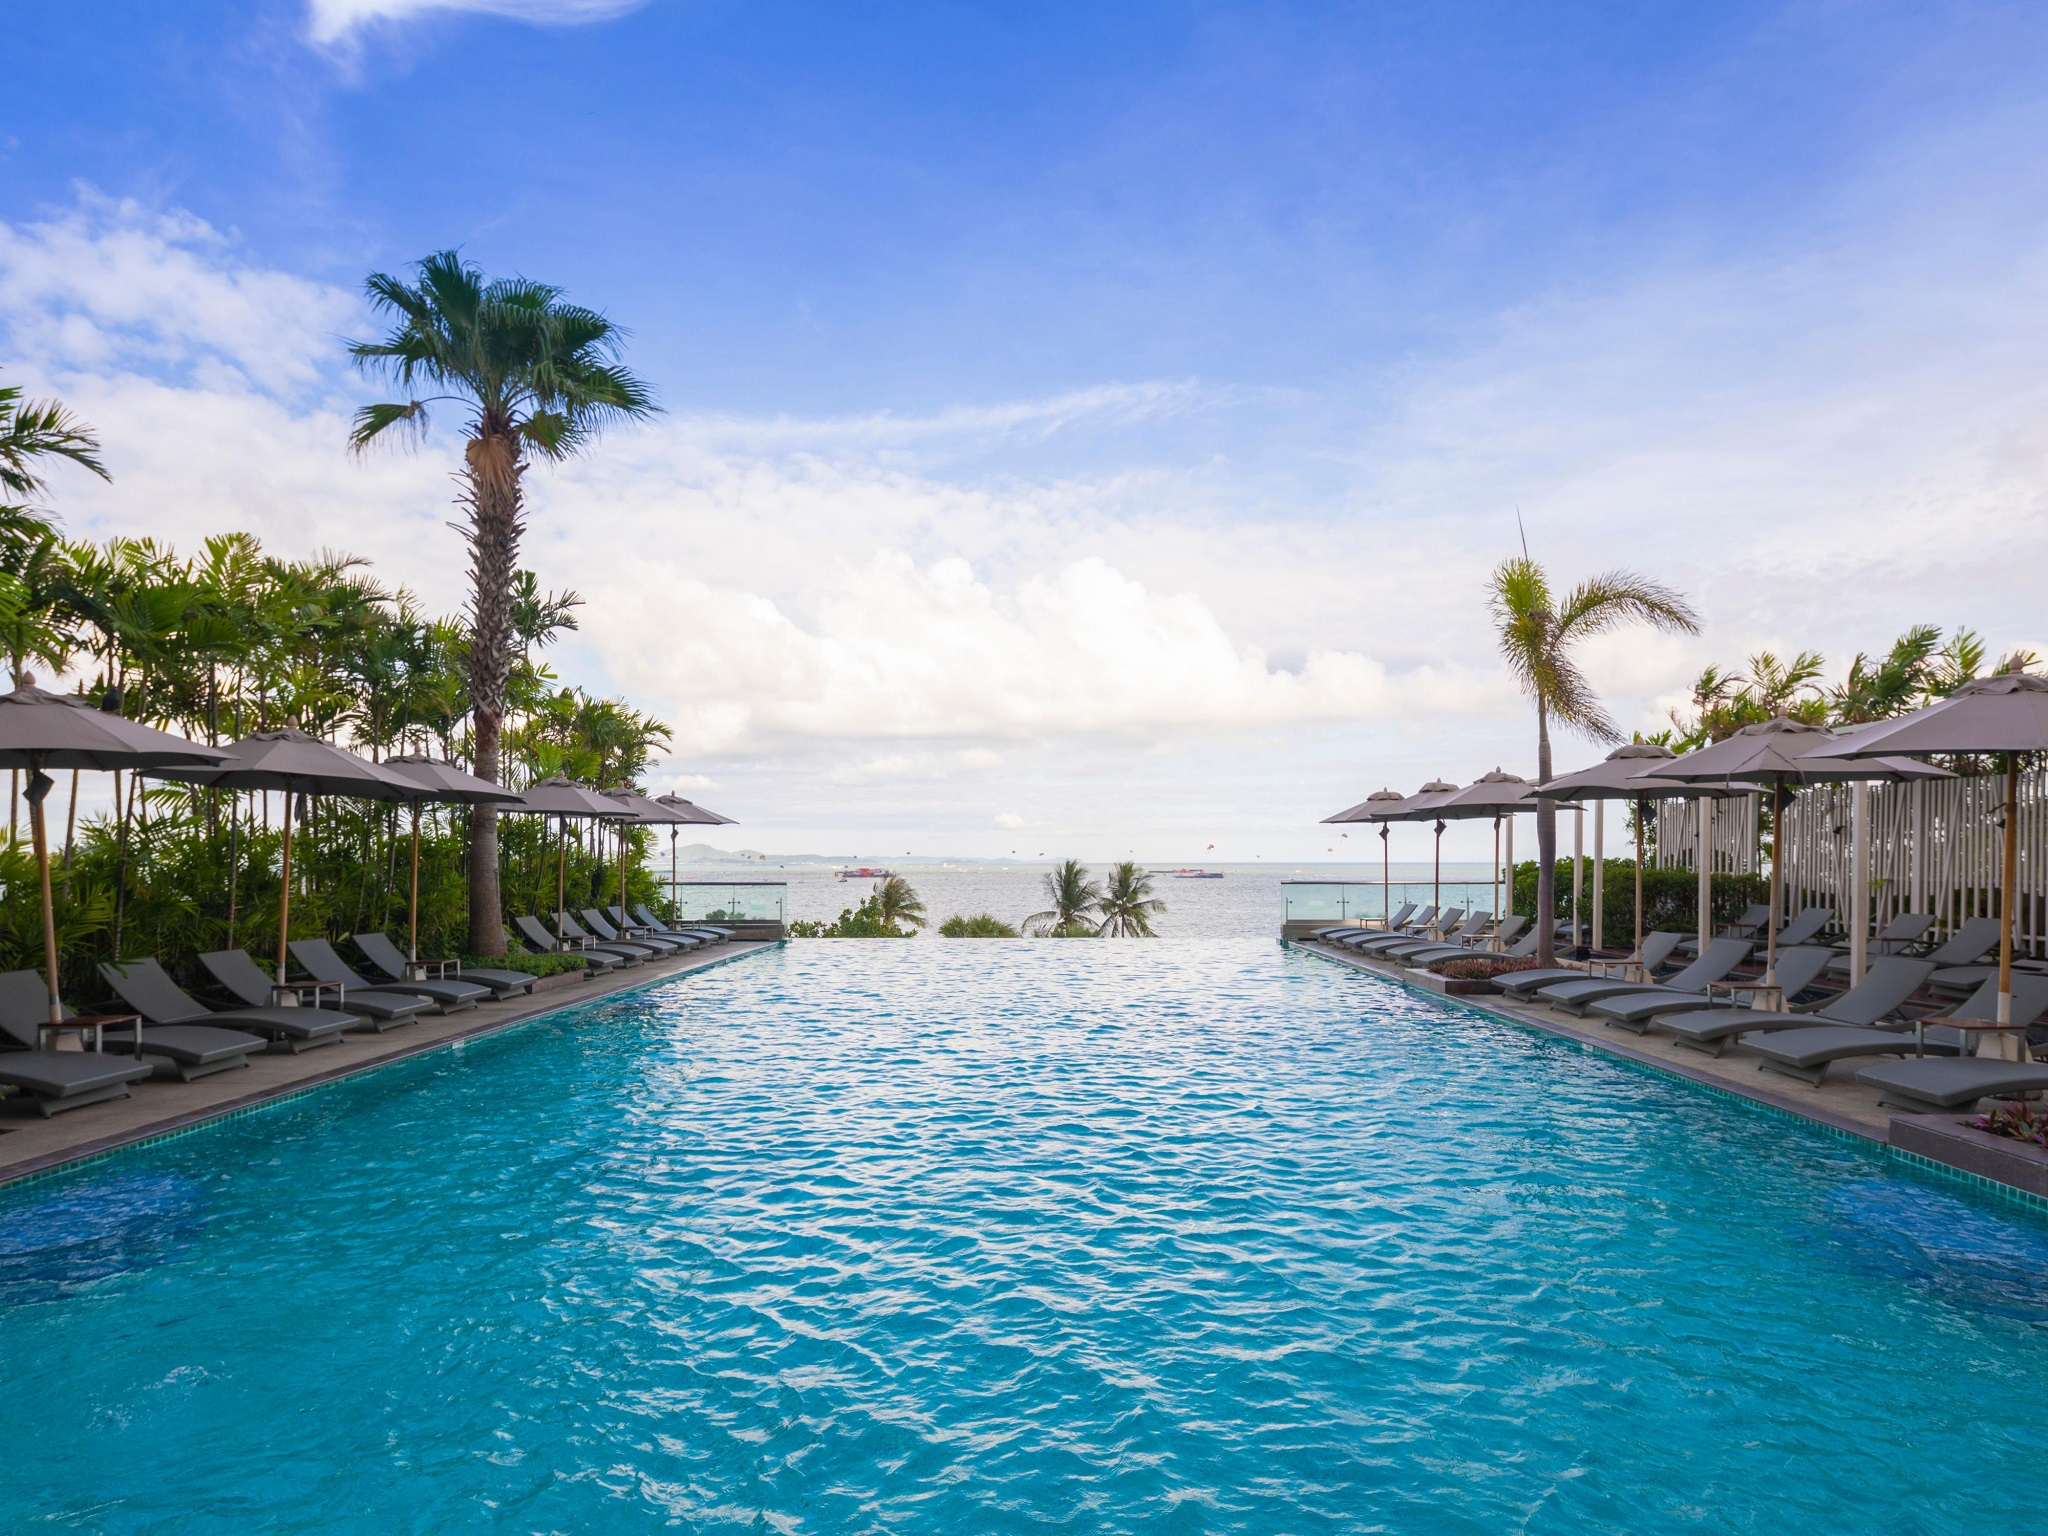 Holiday Inn Pattaya - Top 5 best luxury hotels in Pattaya